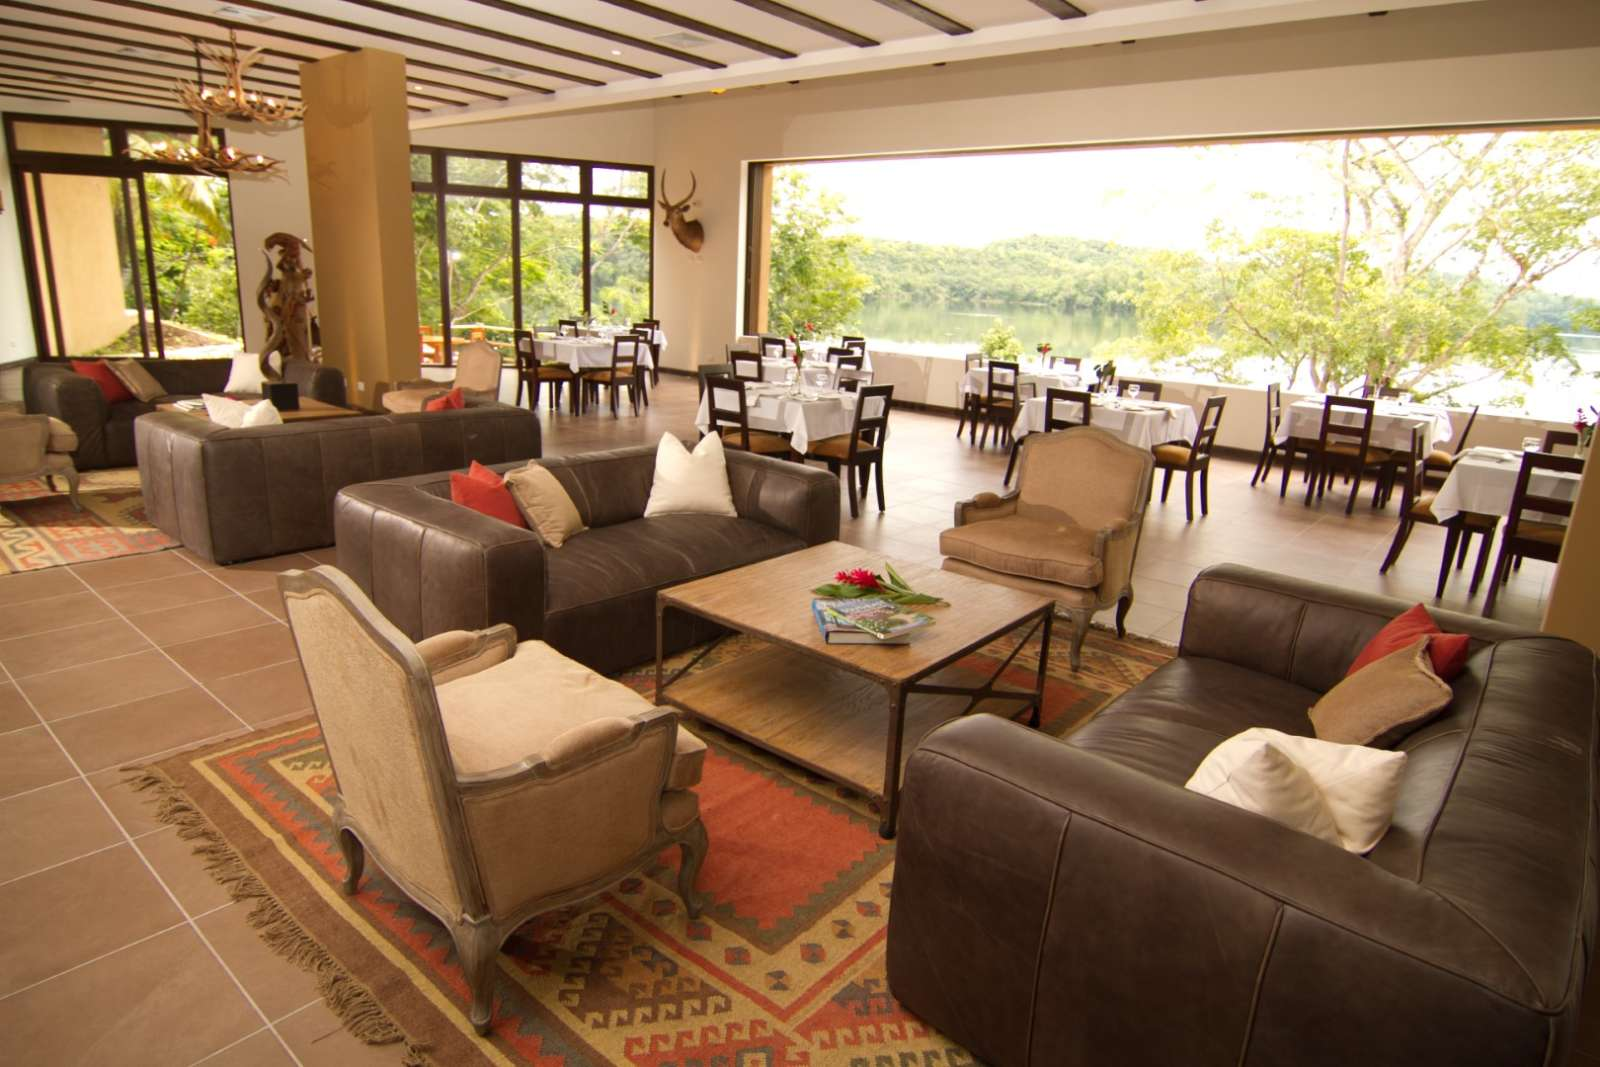 Lounge and restaurant at Hotel Las Lagunas, Guatemala